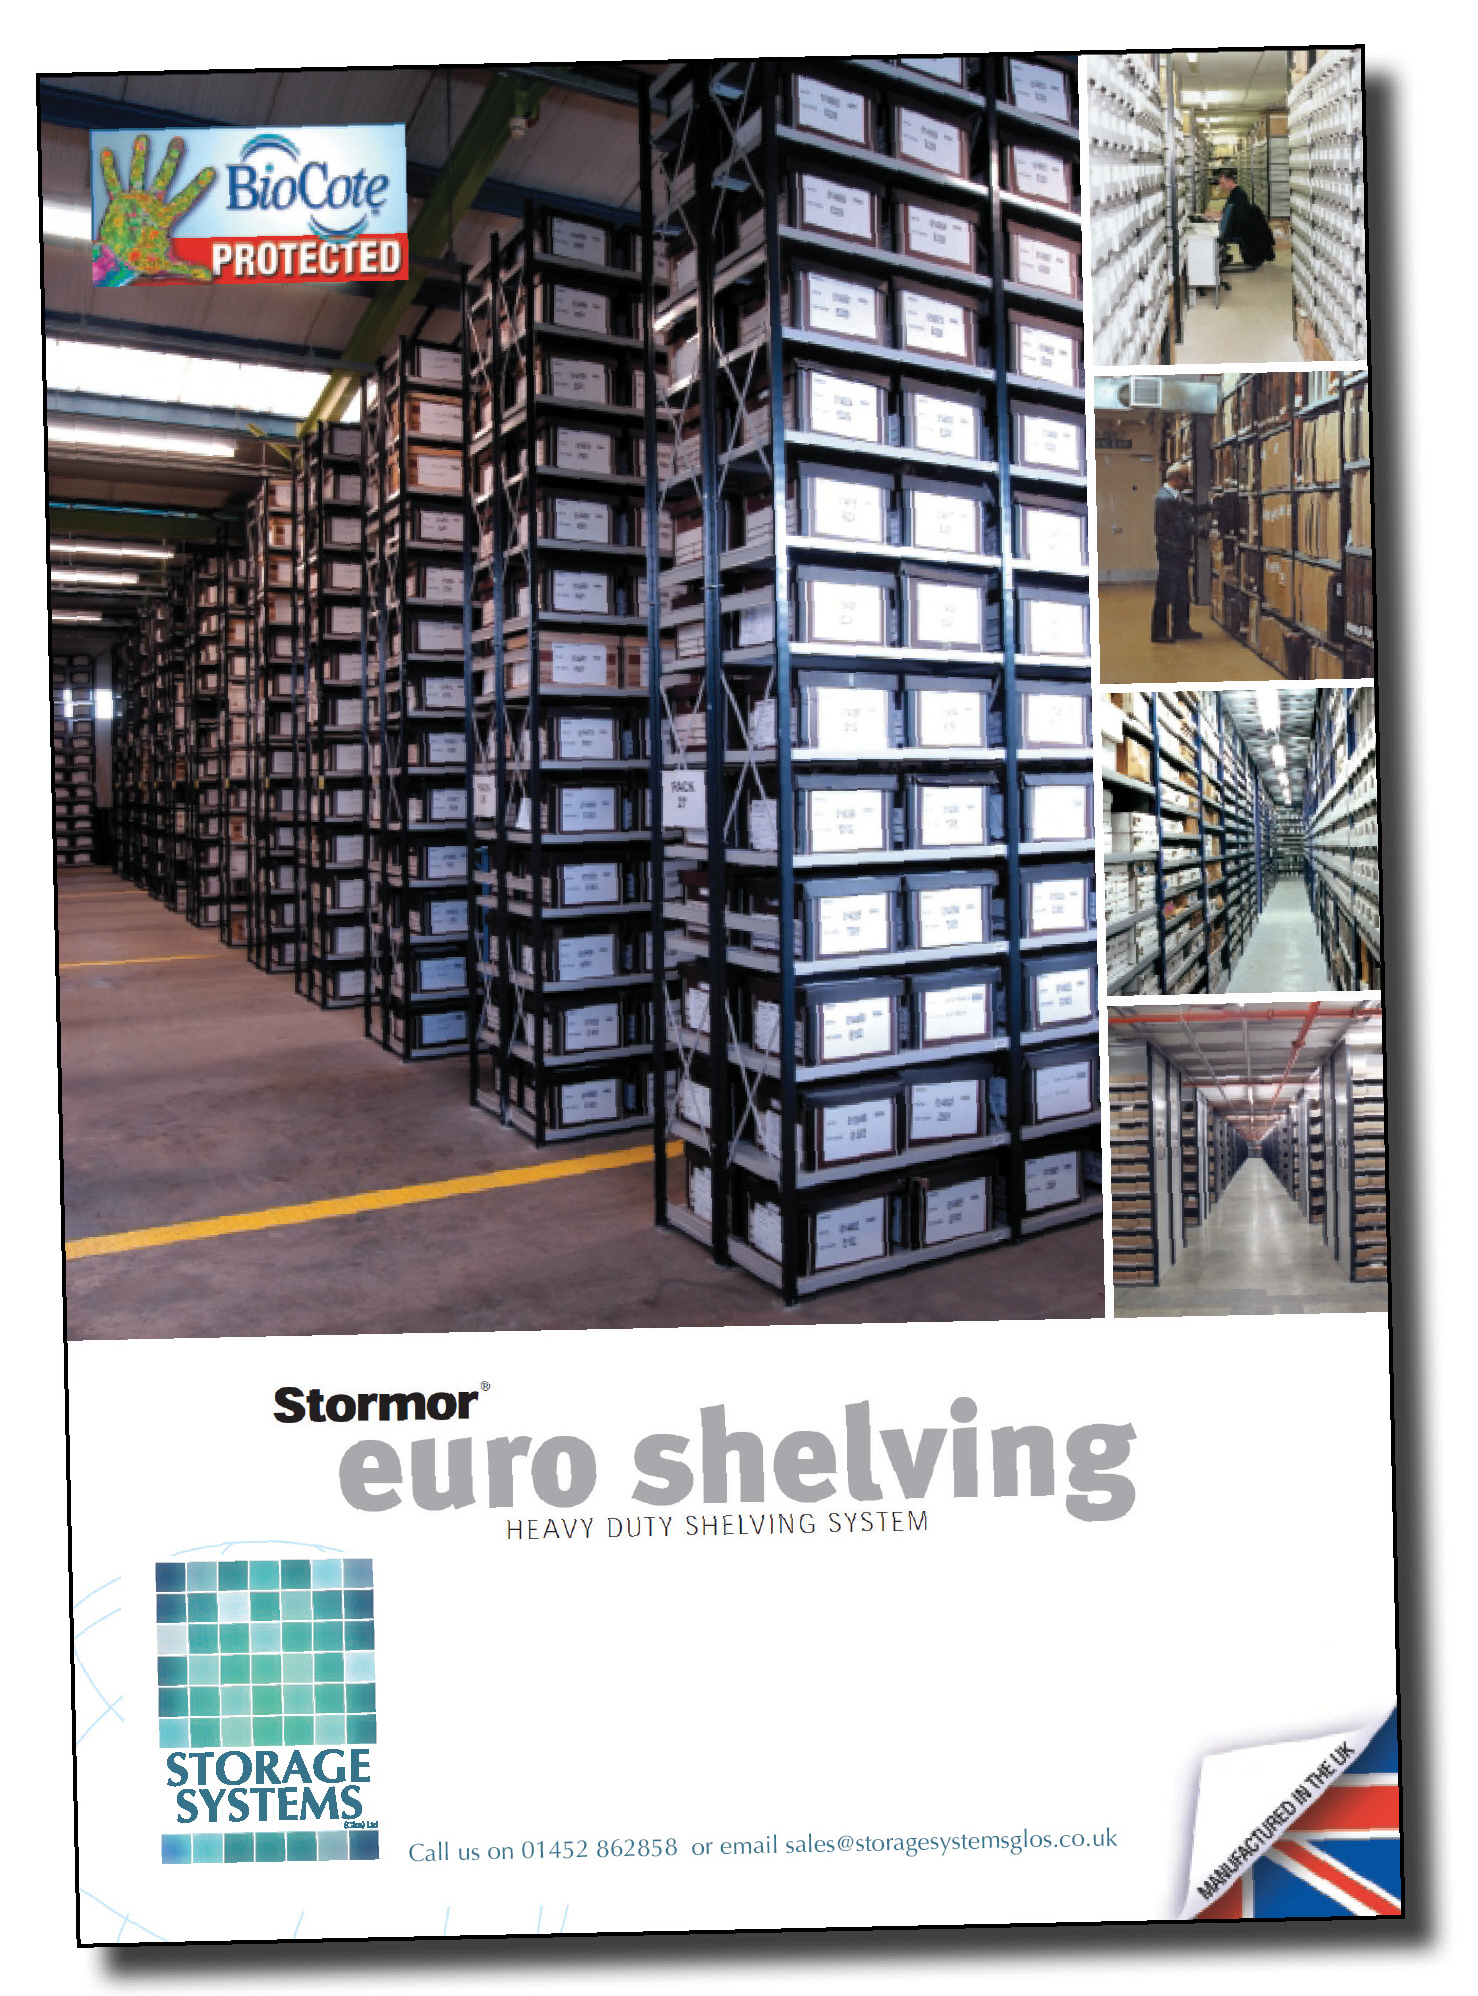 Click to download Gloucestershire supplier Storage Systems' warehouse shelving brochure